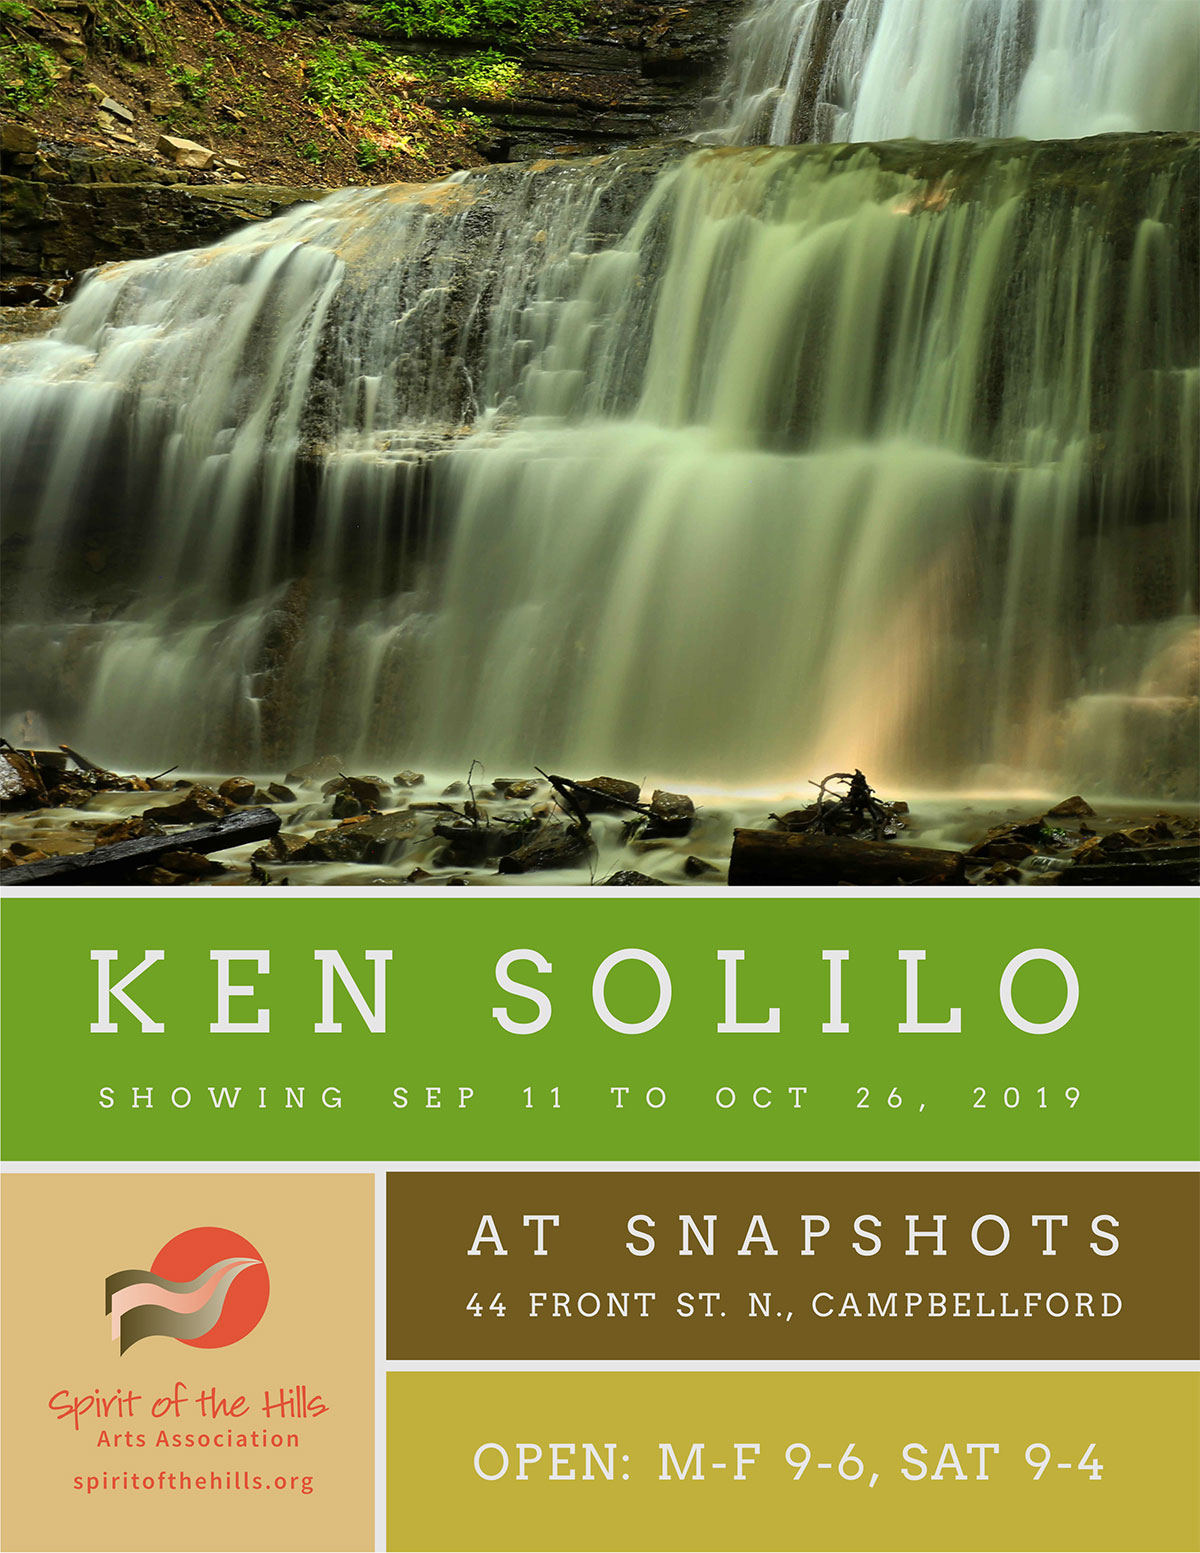 Ken Solilo Photography at Snapshots